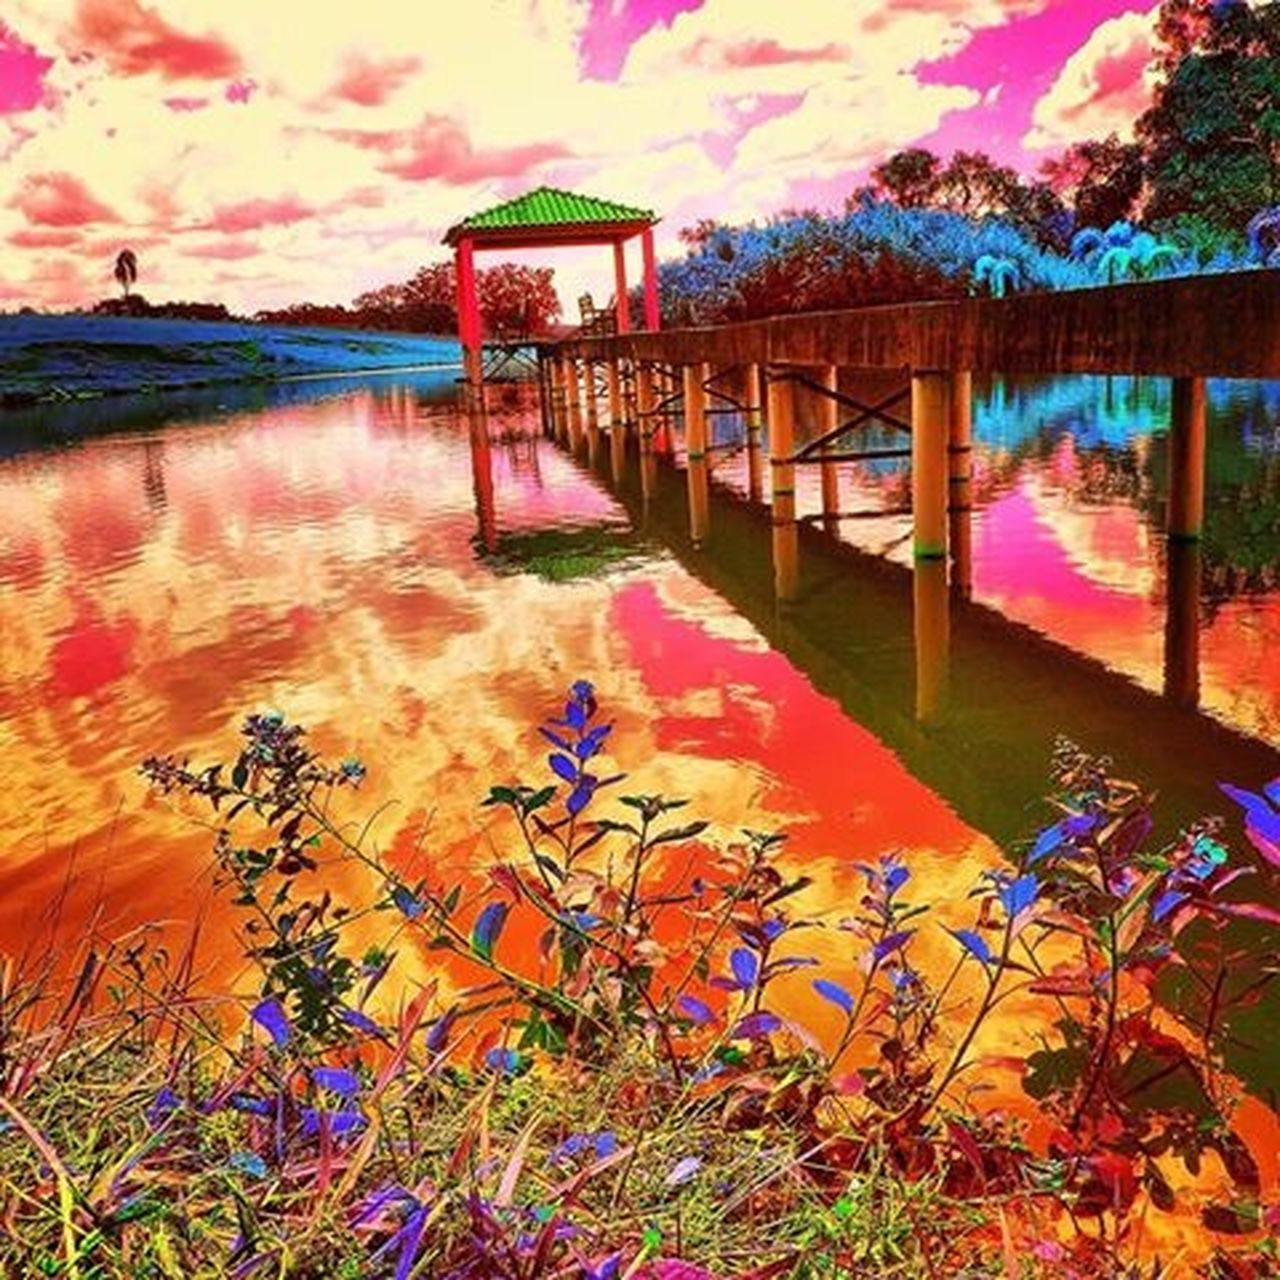 water, reflection, lake, nature, beauty in nature, tranquility, standing water, flower, scenics, tranquil scene, outdoors, waterfront, sky, plant, tree, no people, day